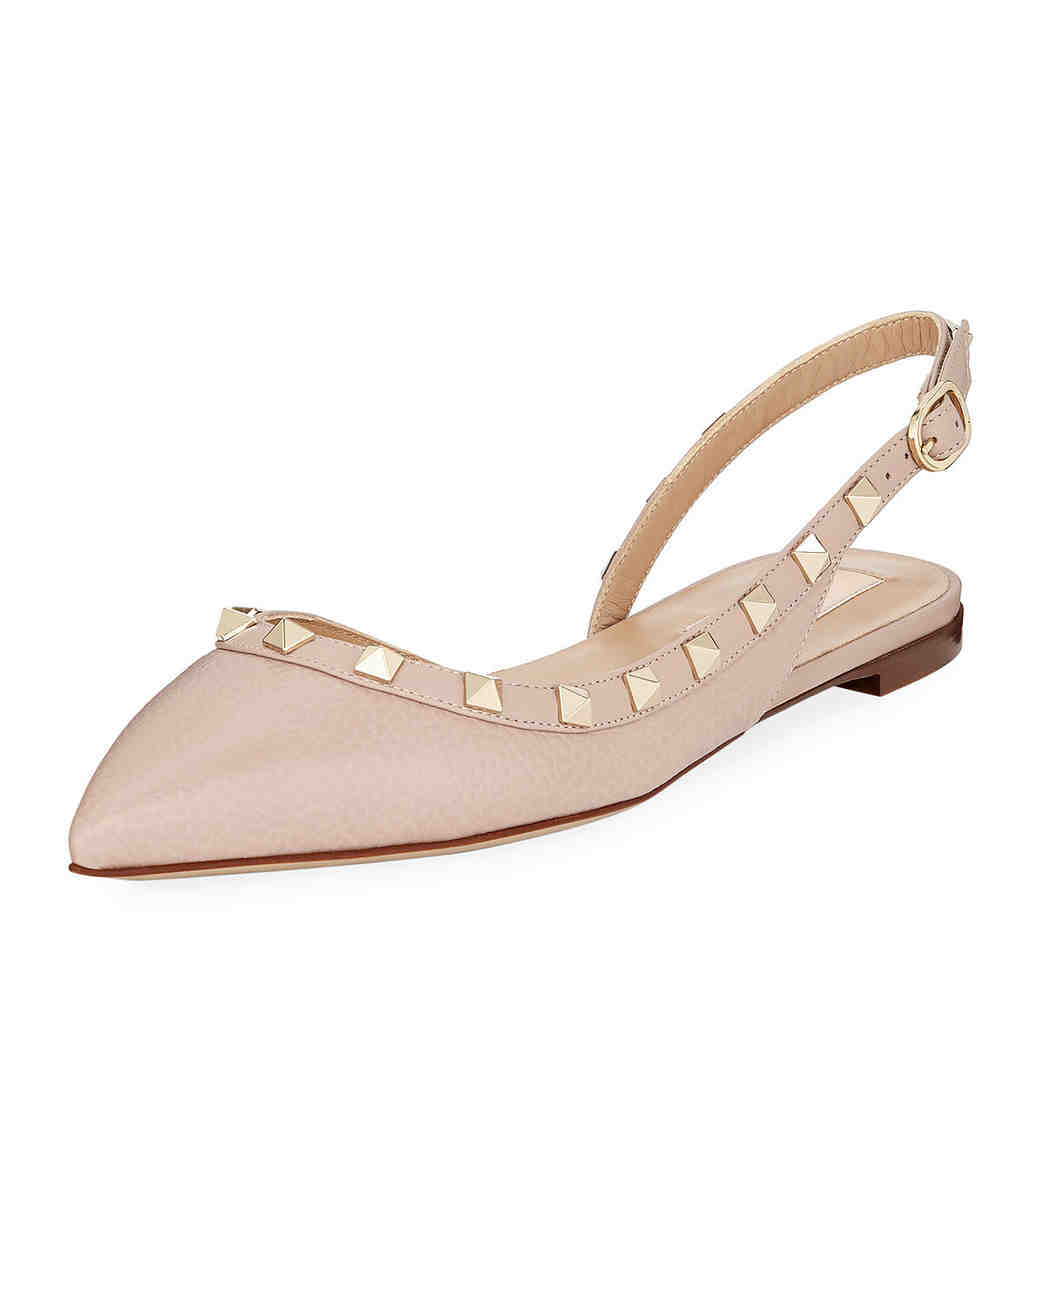 leather sling-back ballet flats bridesmaid shoes